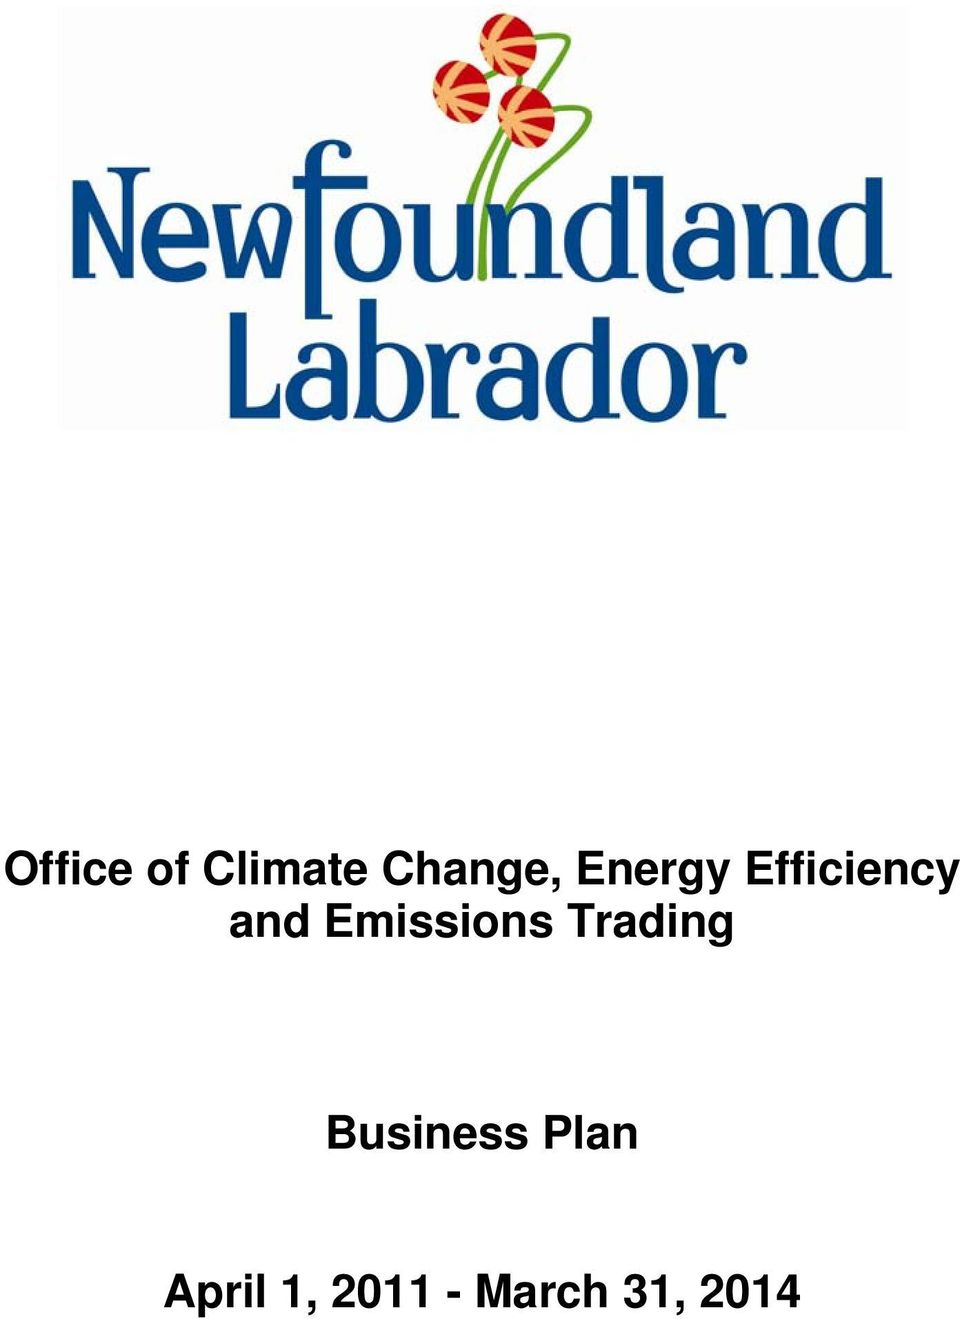 Emissions Trading Business